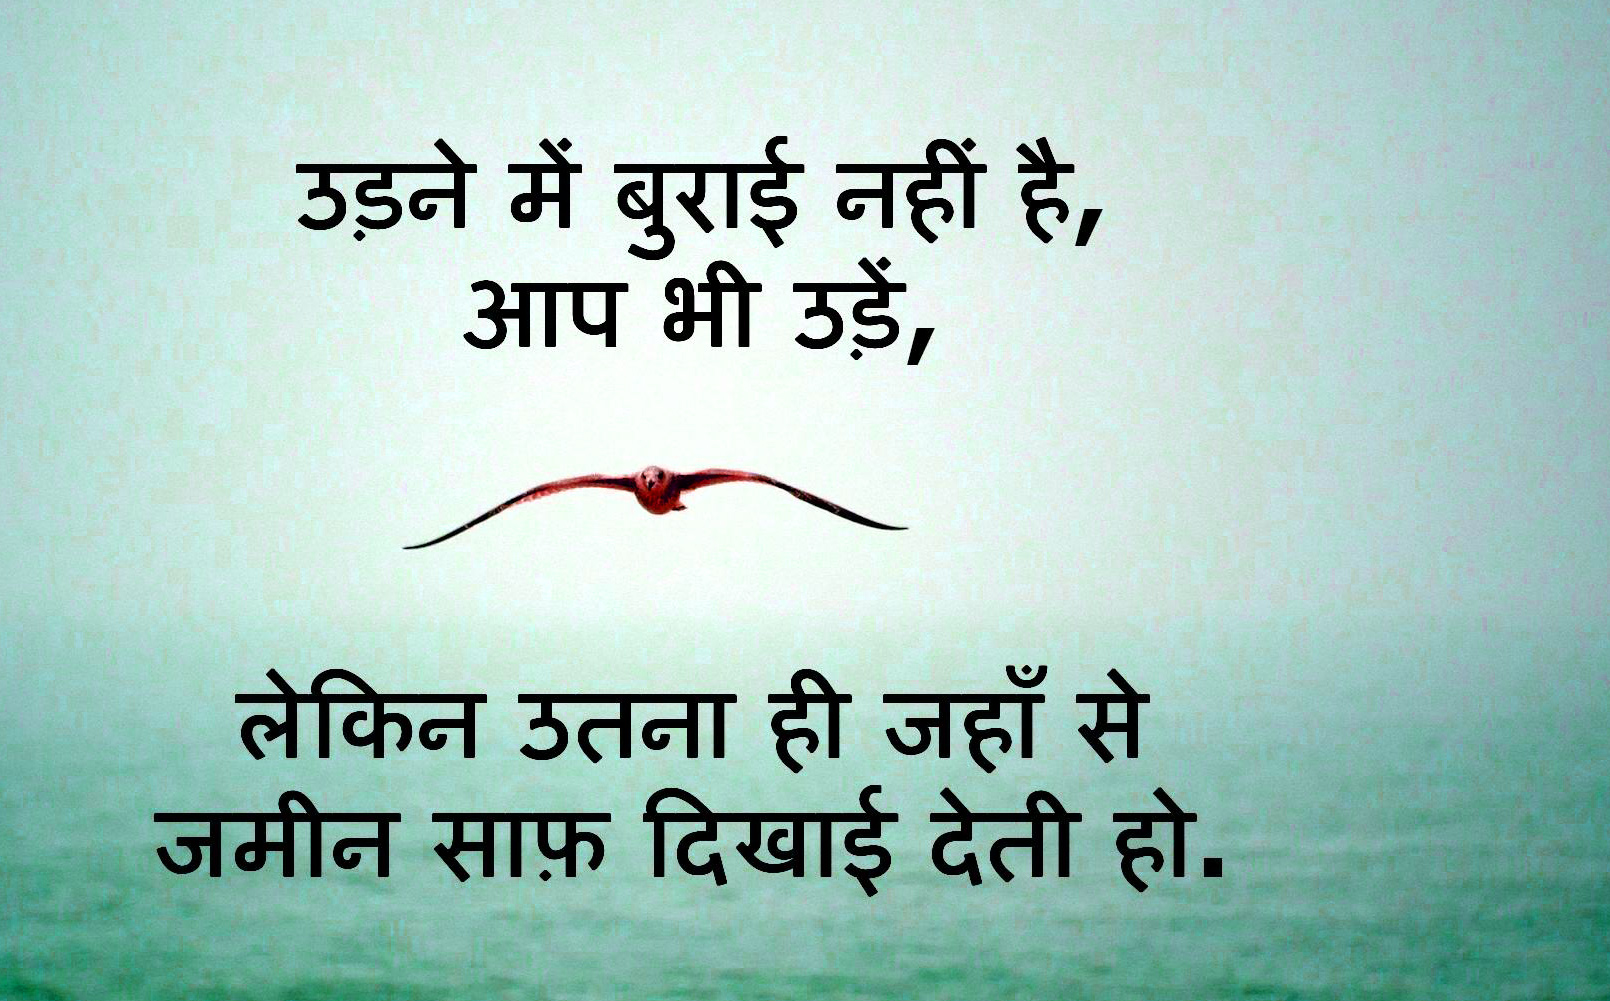 Hindi Quotes About Life and Love Images Wallpaper Pics HD Download